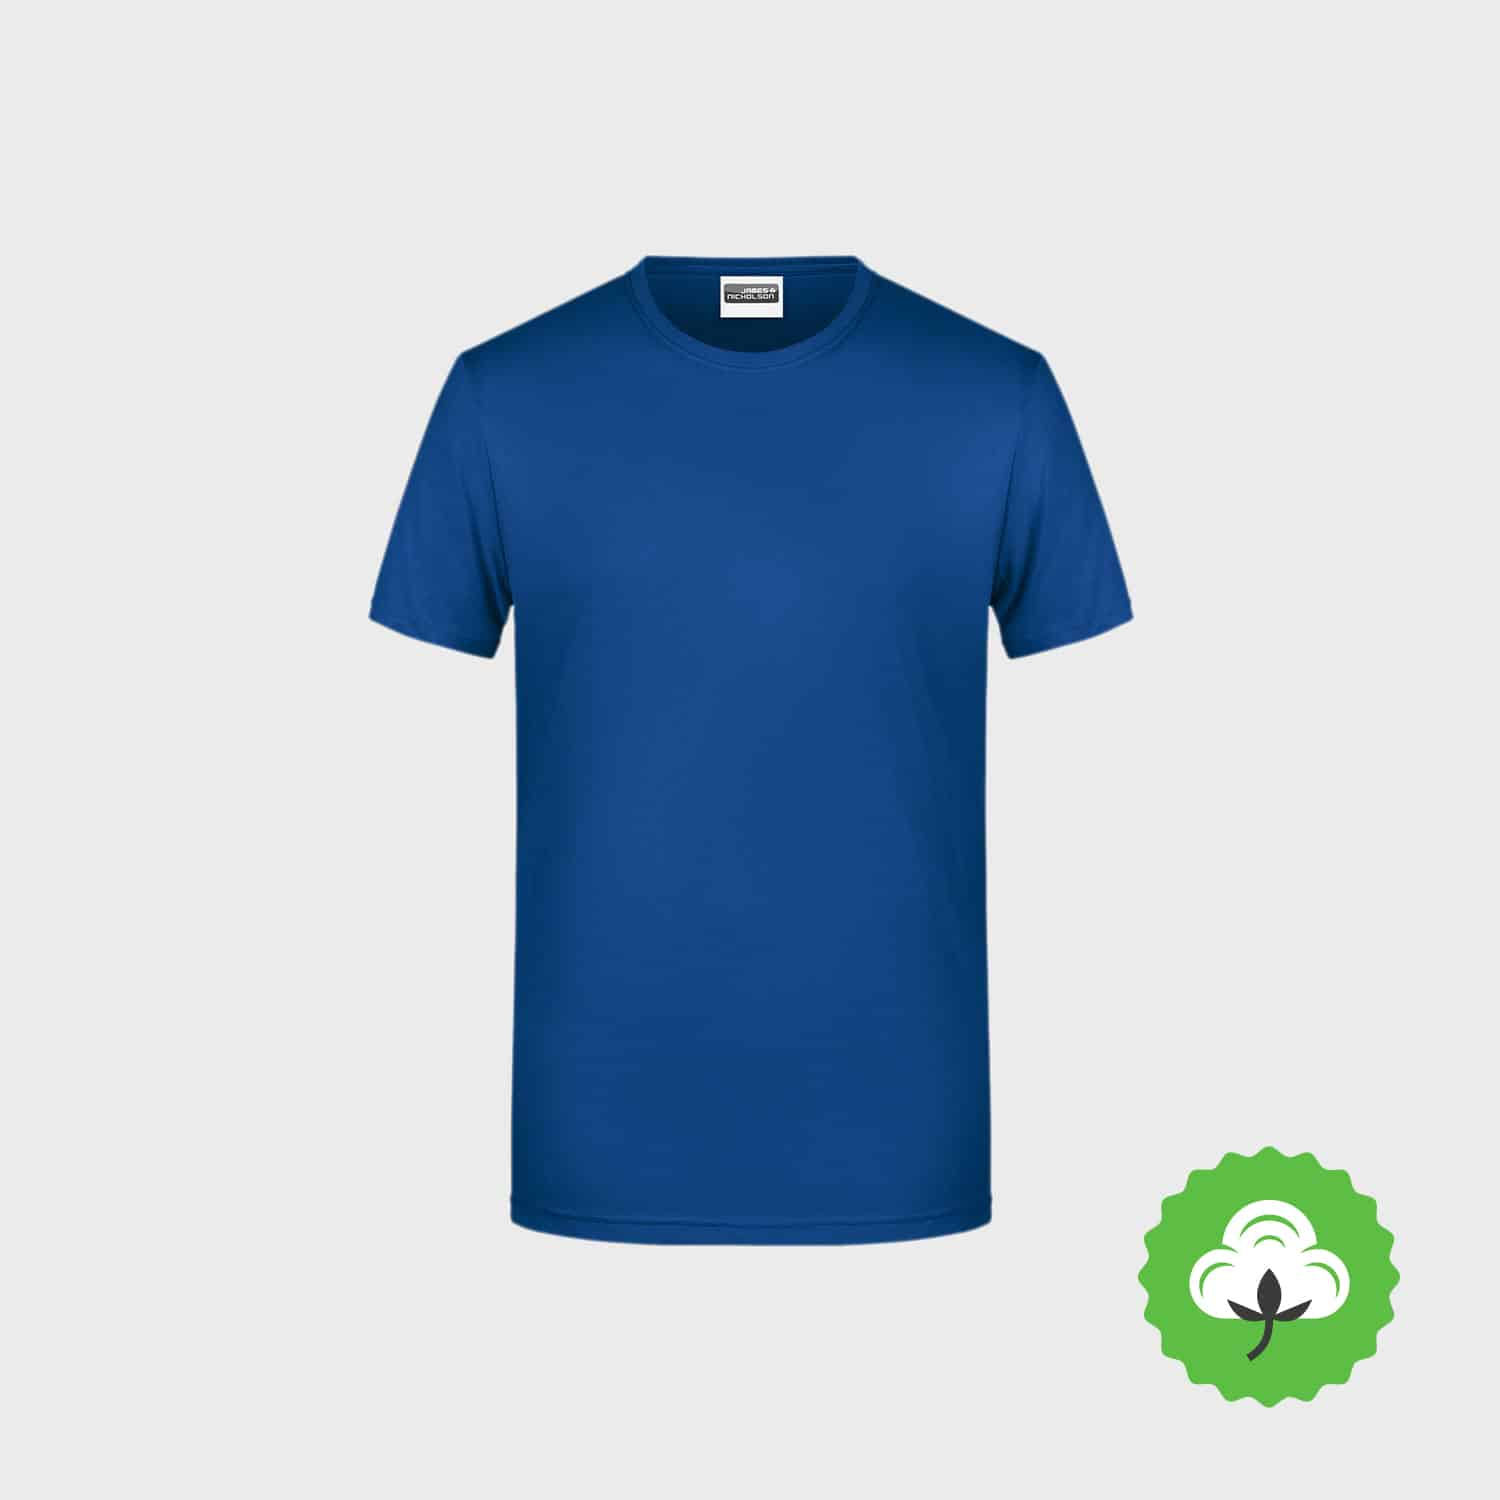 Bio T Shirt Men Basic Bio Cotton Ash 8008 StickManufaktur